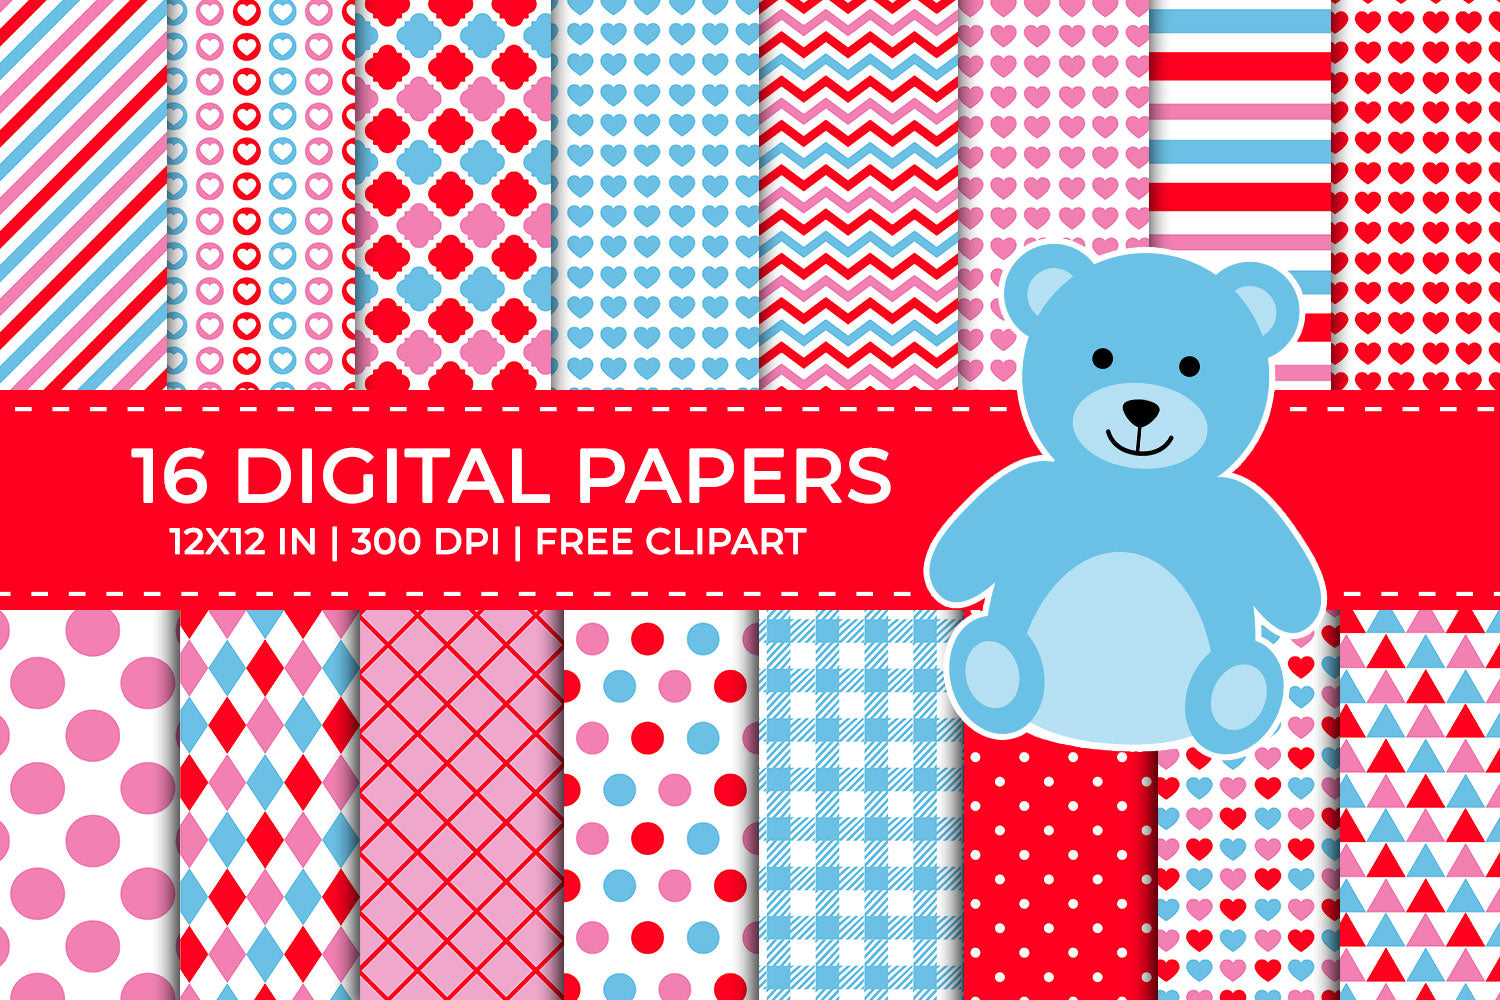 Blue, Red and Pink Valentine Digital Papers Set, Free Teddy Bear Clipart